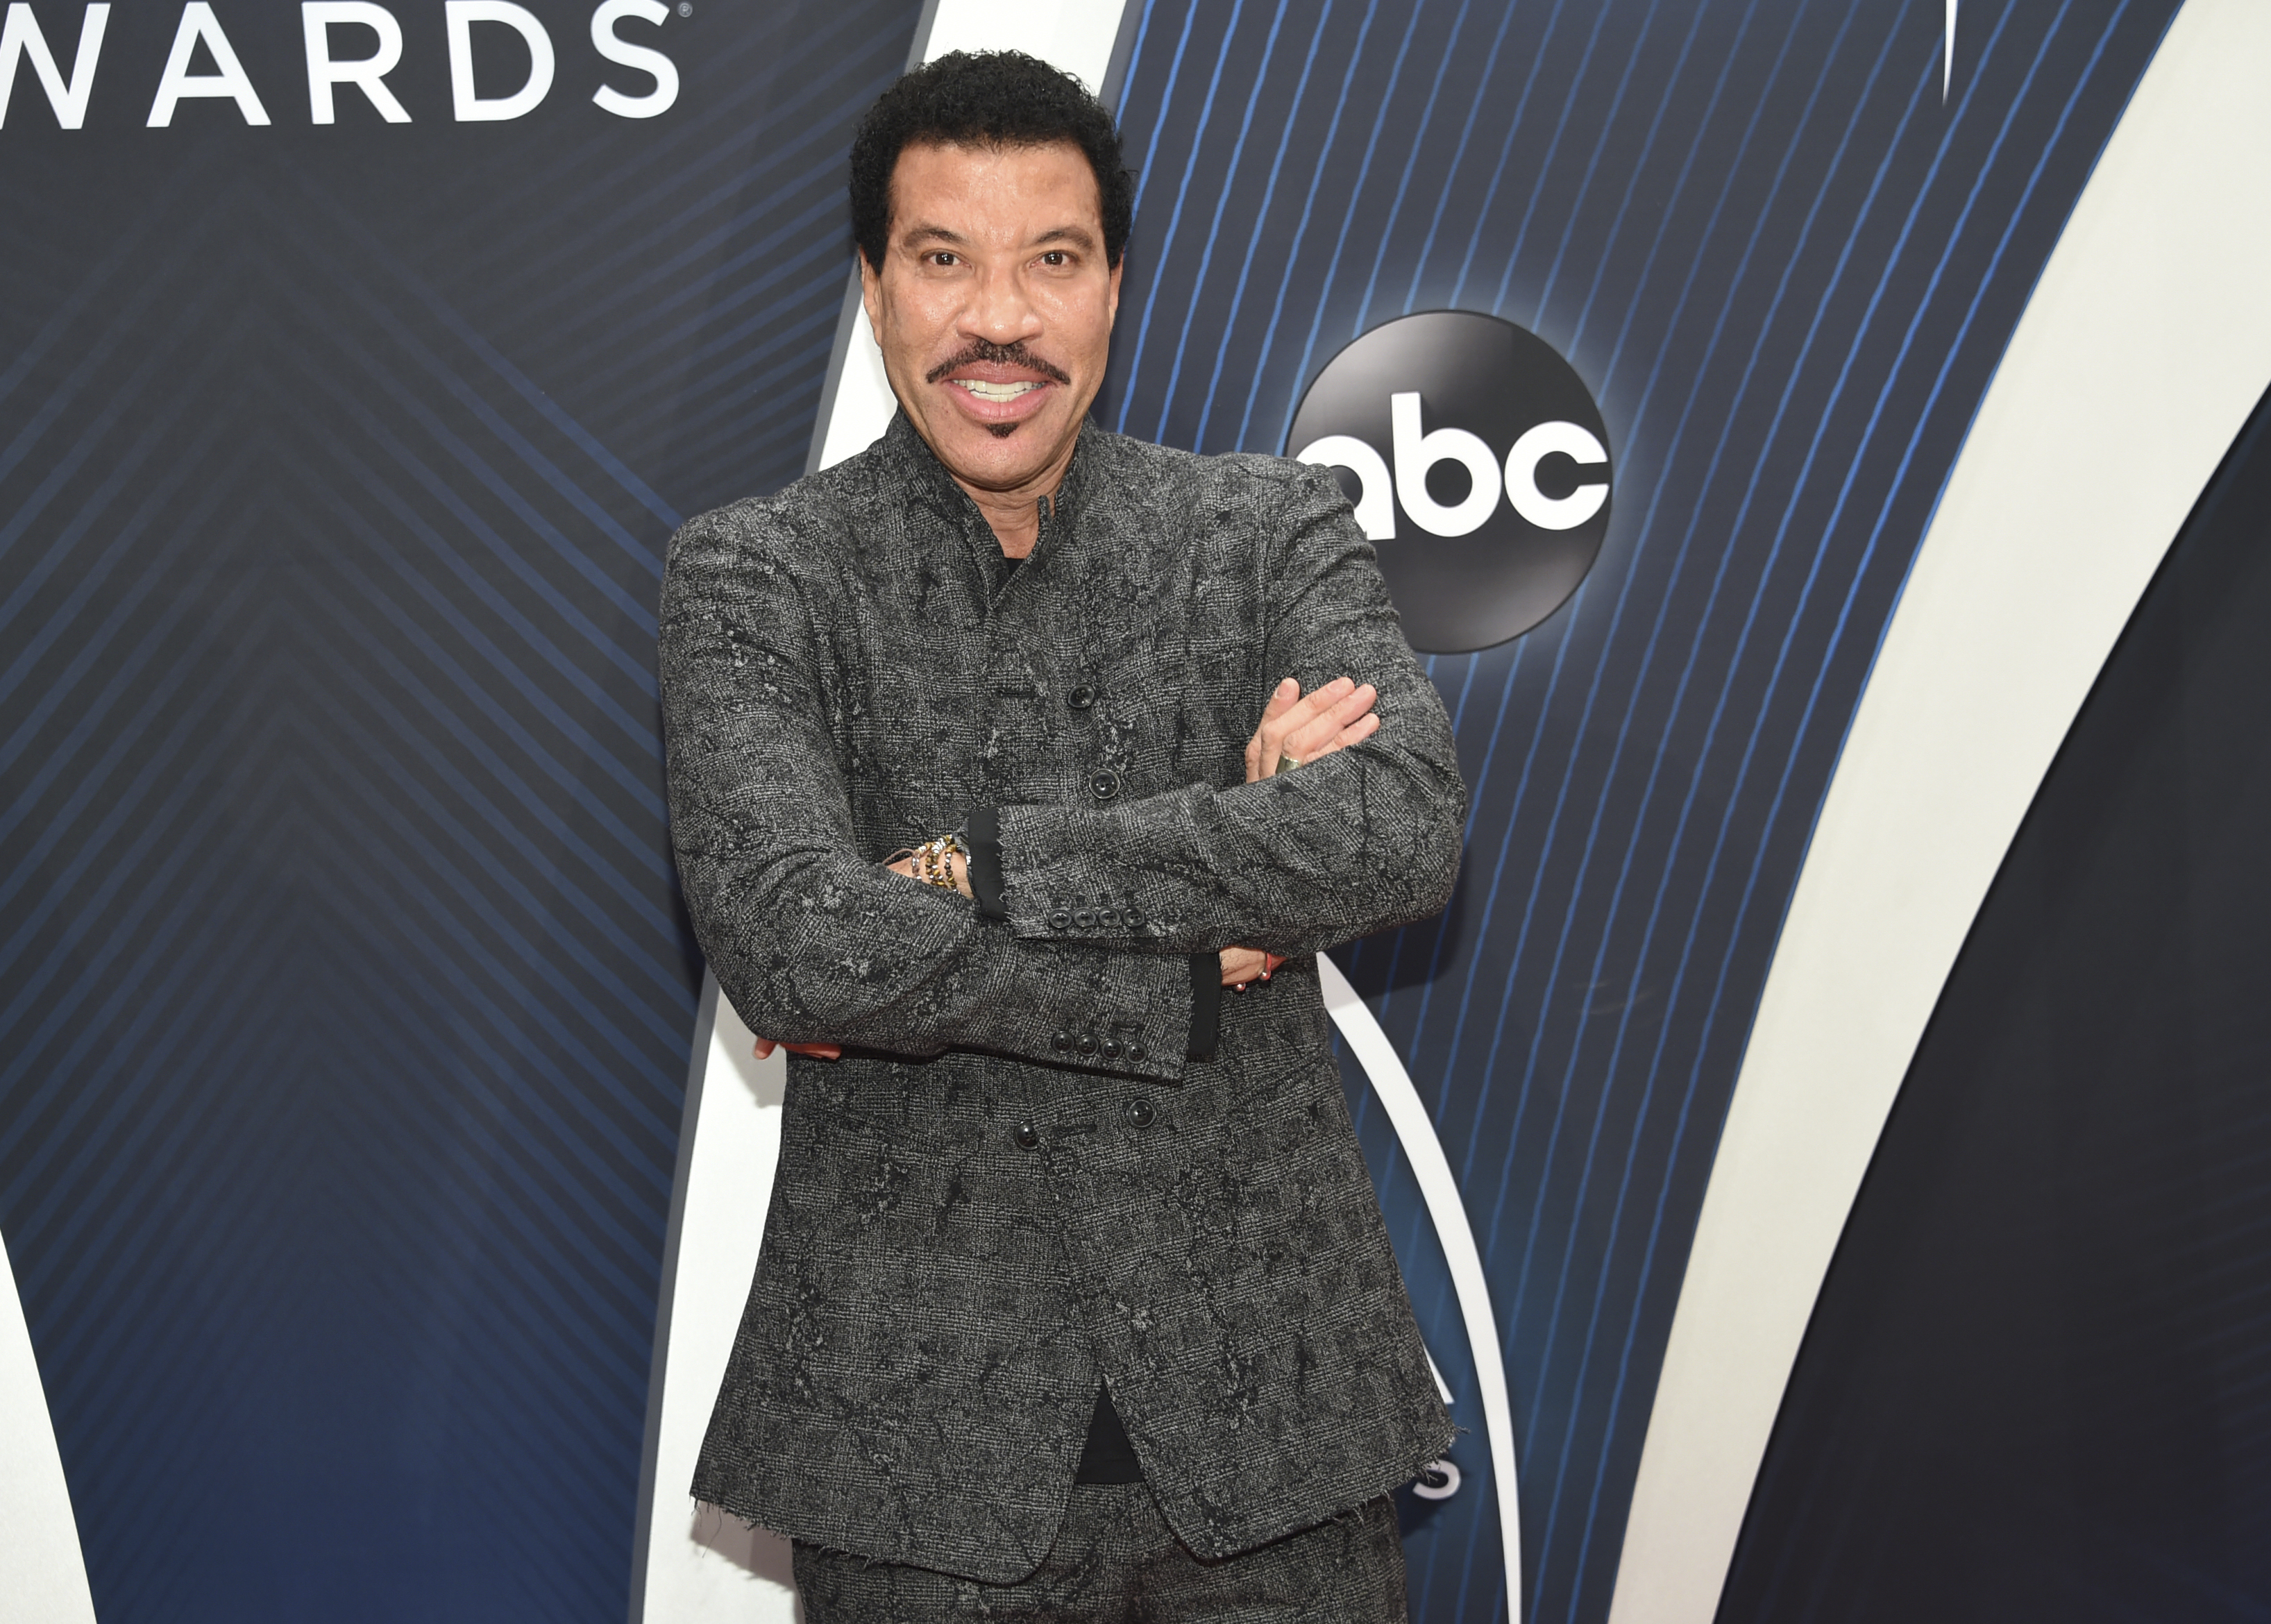 "<div class=""meta image-caption""><div class=""origin-logo origin-image ap""><span>AP</span></div><span class=""caption-text"">Lionel Richie arrives at the 52nd annual CMA Awards at Bridgestone Arena on Wednesday, Nov. 14, 2018, in Nashville, Tenn. (Photo by Evan Agostini/Invision/AP) (Evan Agostini/Invision/AP)</span></div>"